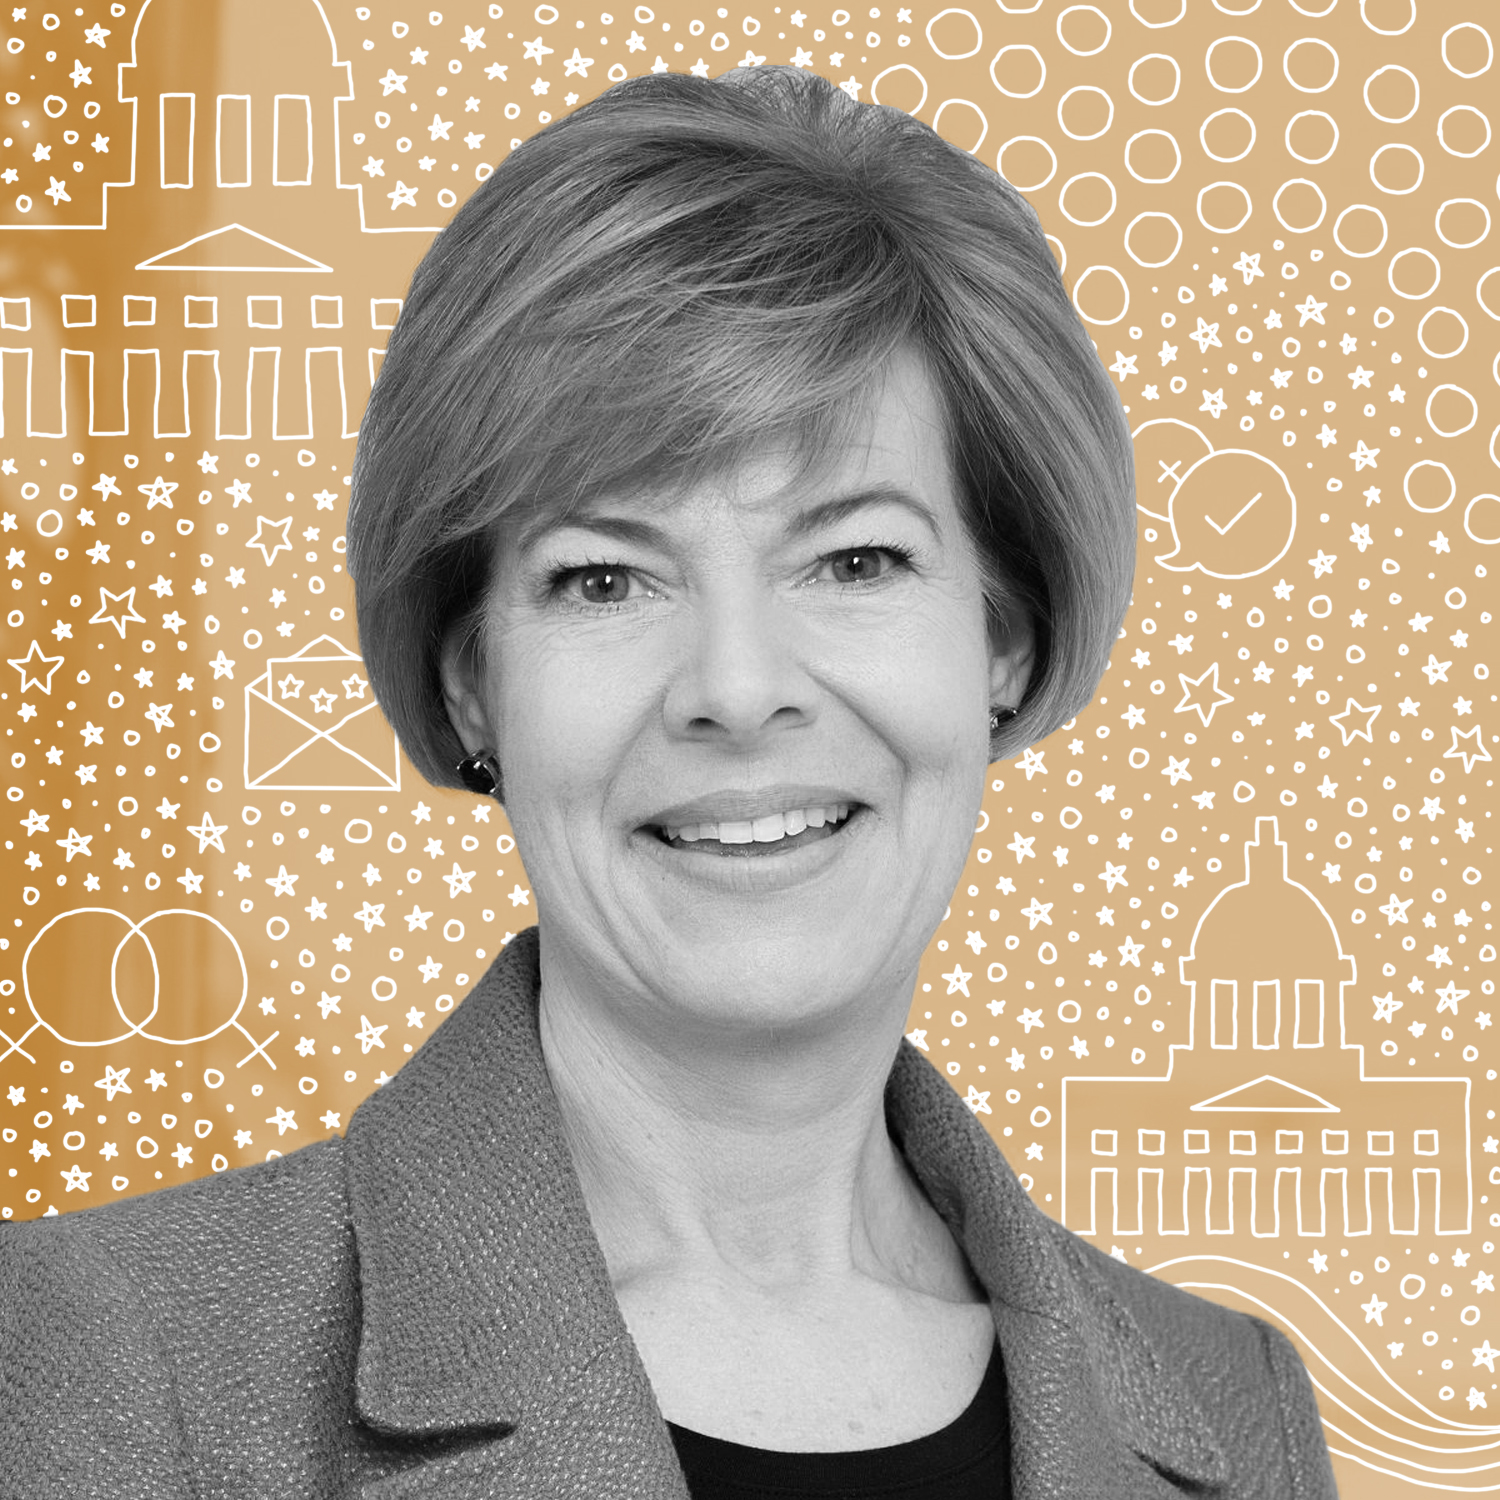 Tammy Baldwin   In a slew of firsts, Tammy Baldwin was the first openly gay member of the Wisconsin Assembly and was the first openly gay woman elected to the House. She later became the first woman elected to represent Wisconsin in the U.S. Congress and the first openly gay U.S. Senator in history. A true trailblazer.